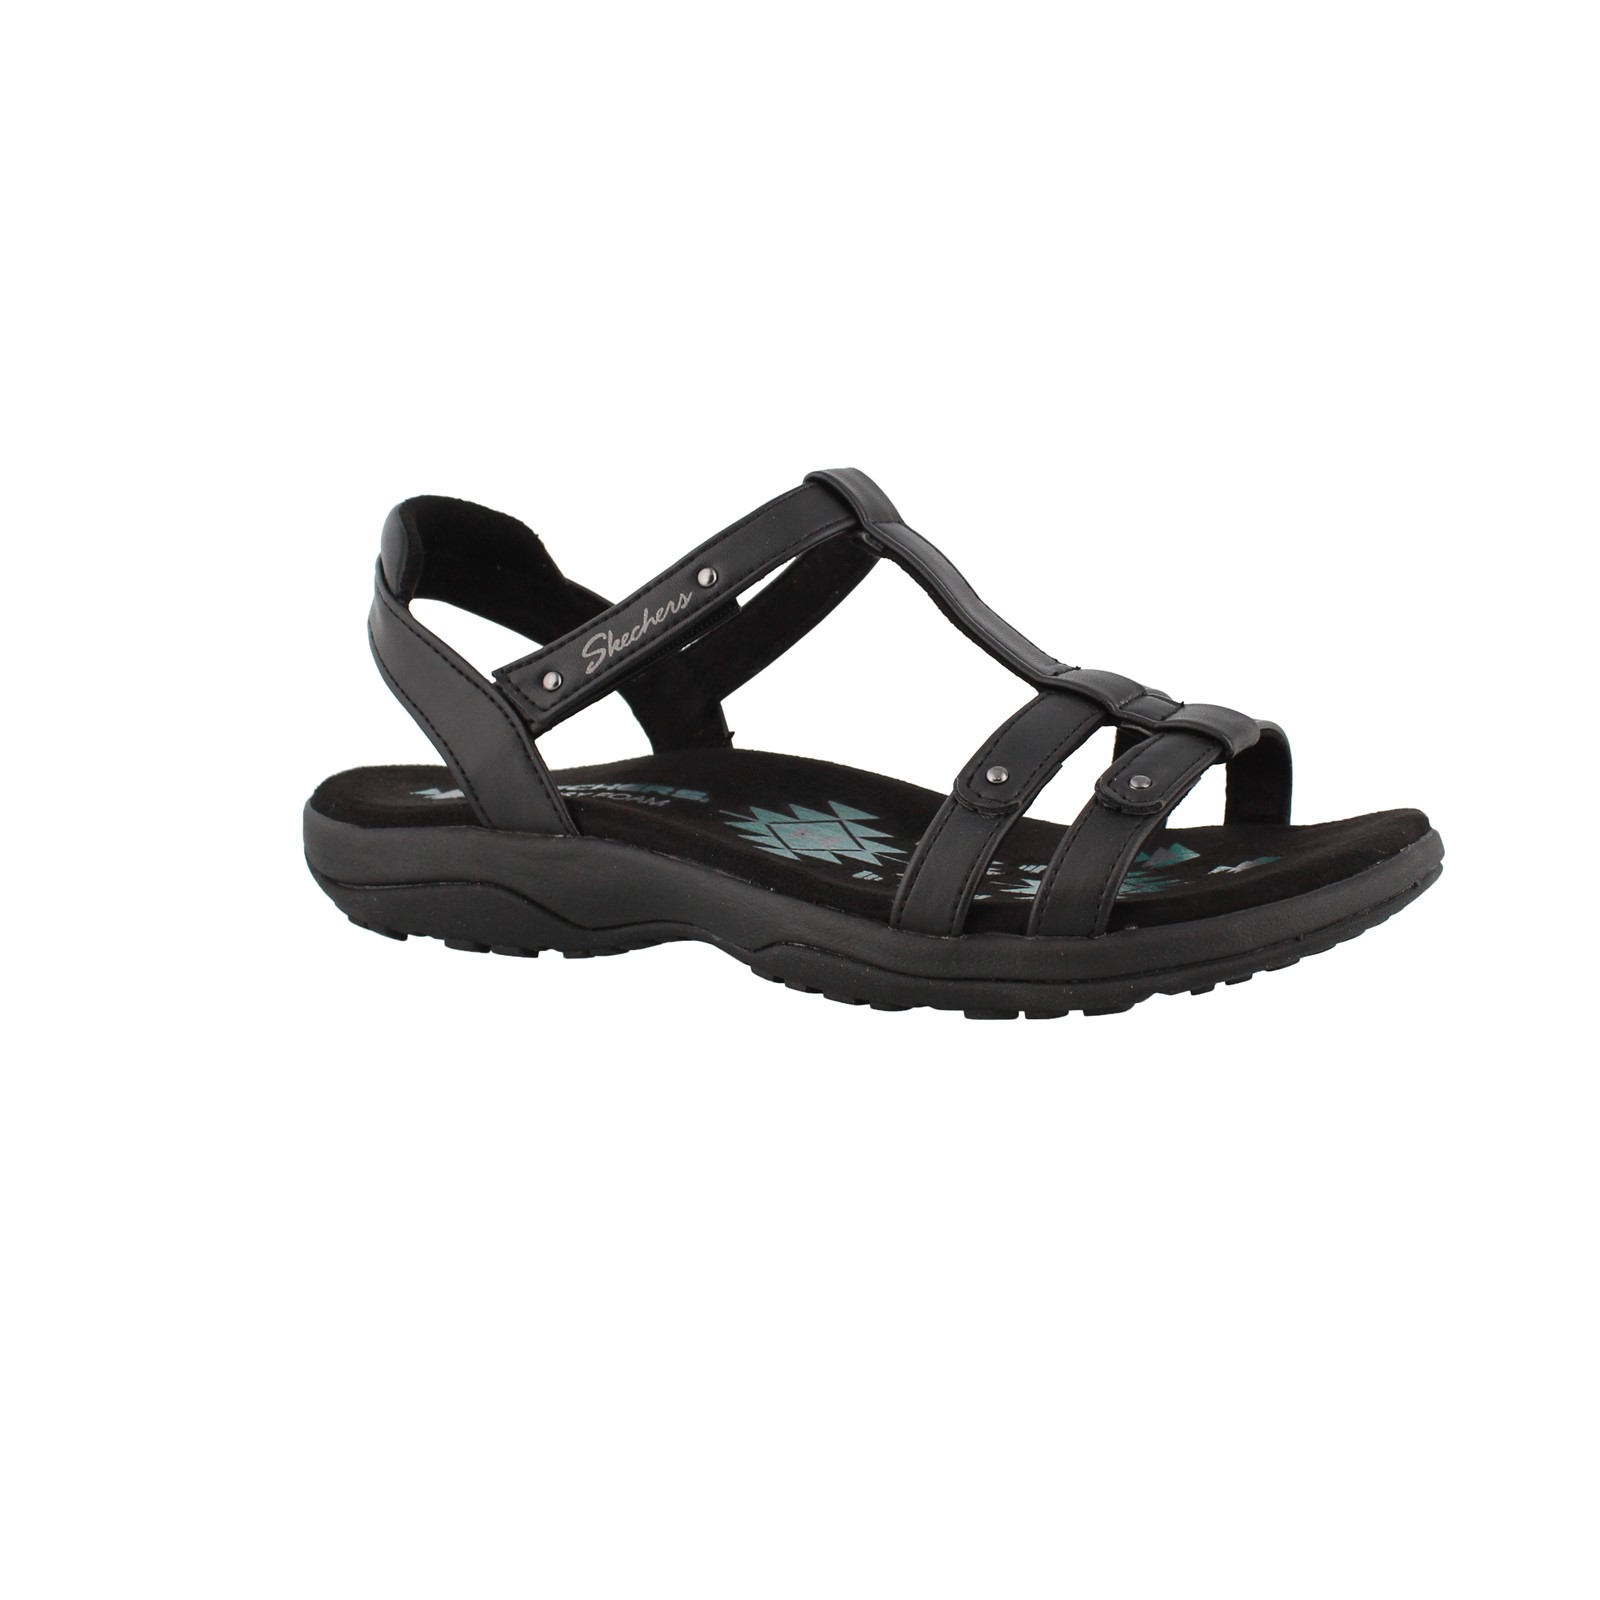 ef6ff6db7cdb Next. add to favorites. Women s Skechers